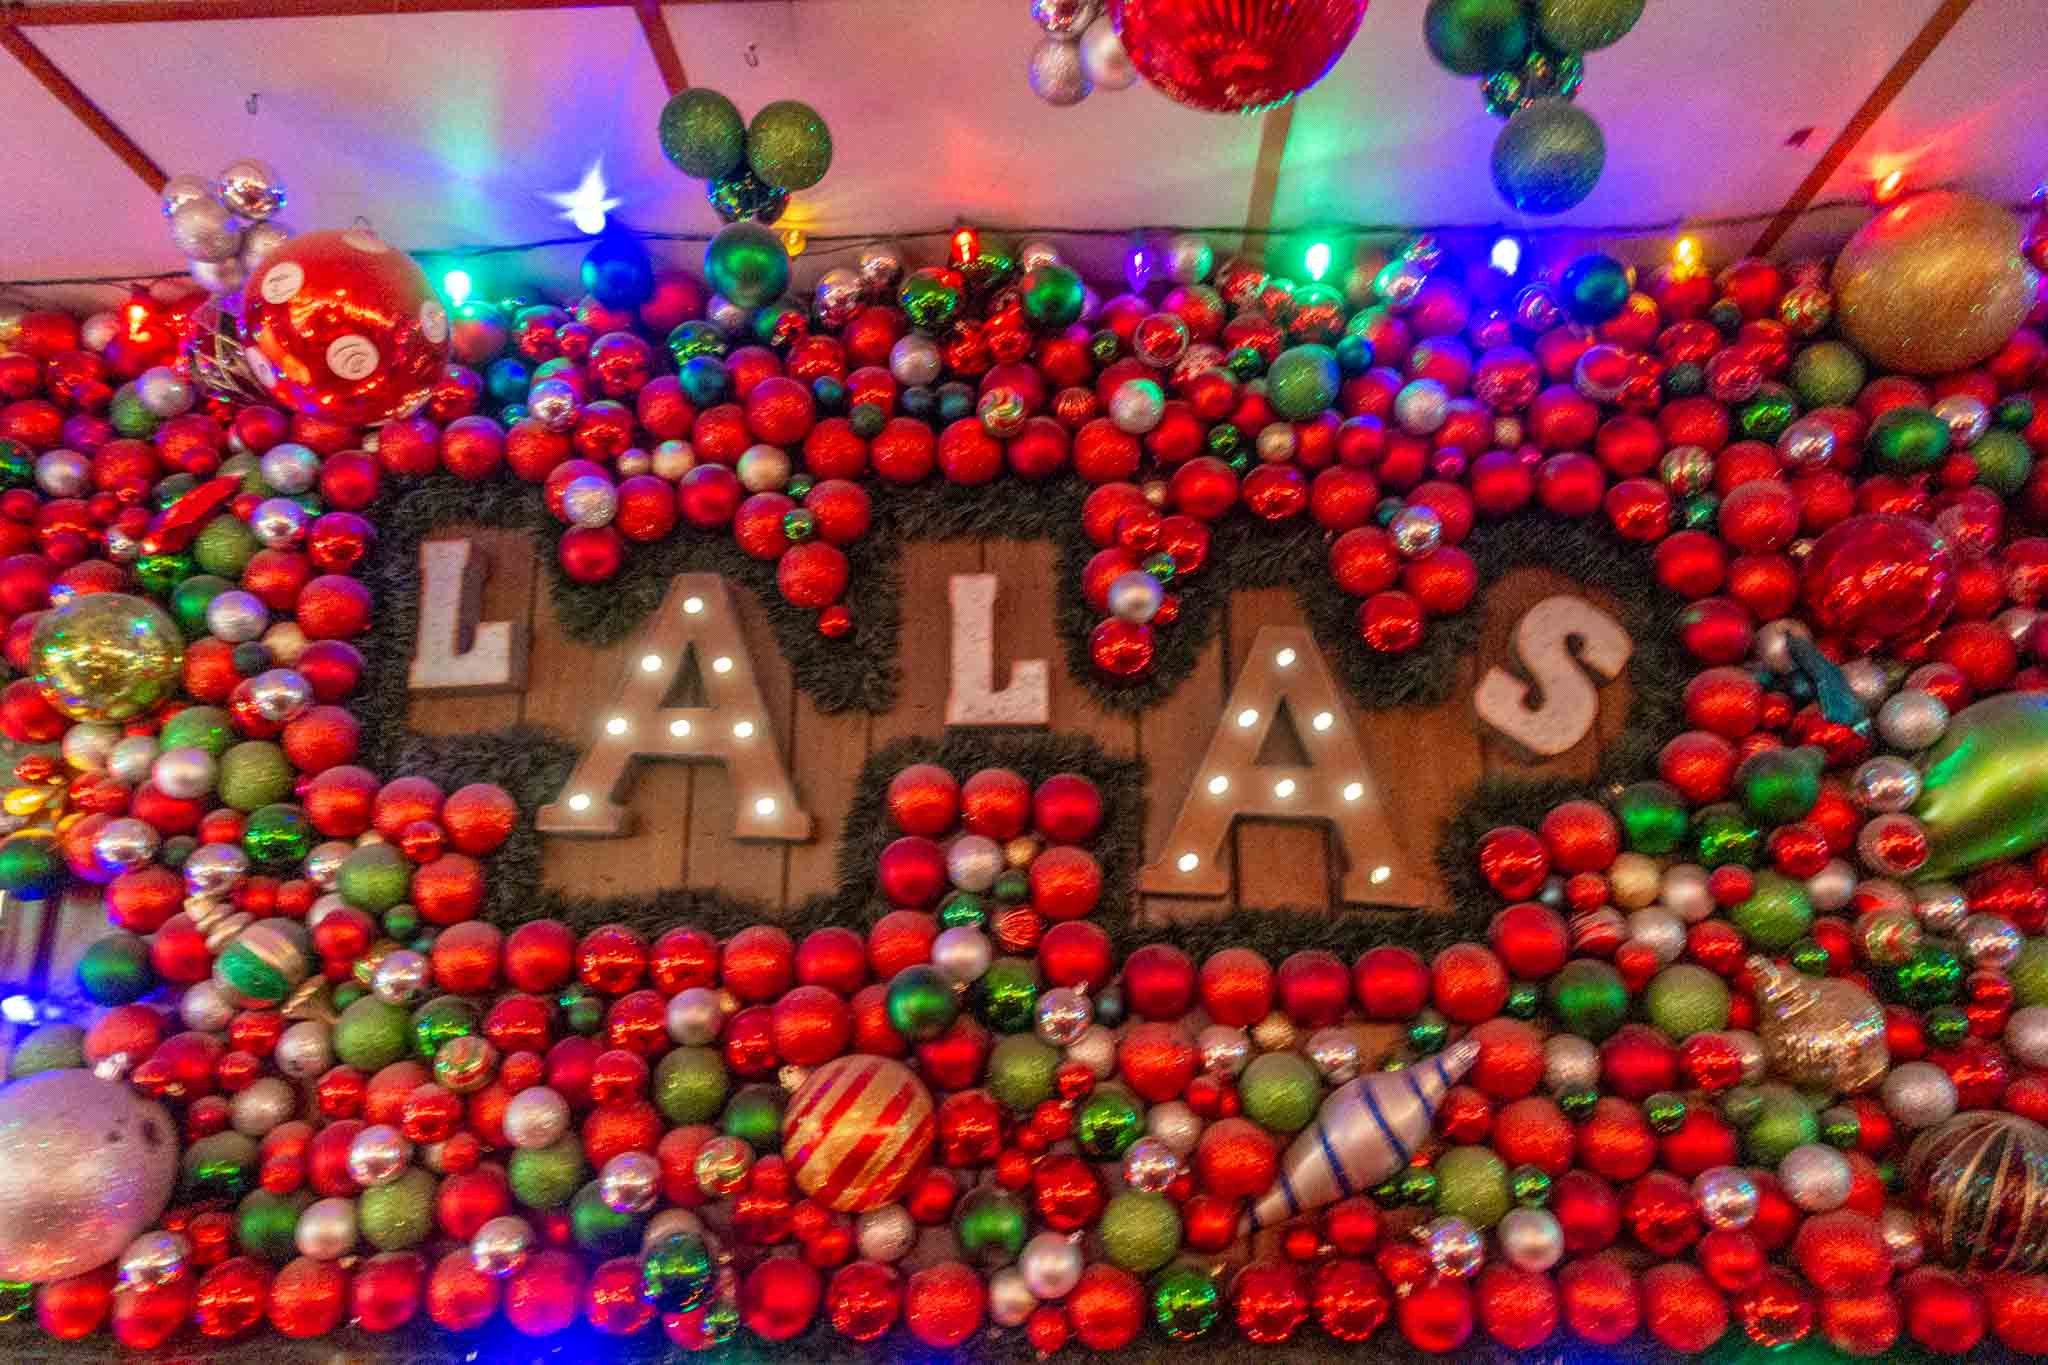 Lala's sign surrounded by Christmas ornaments